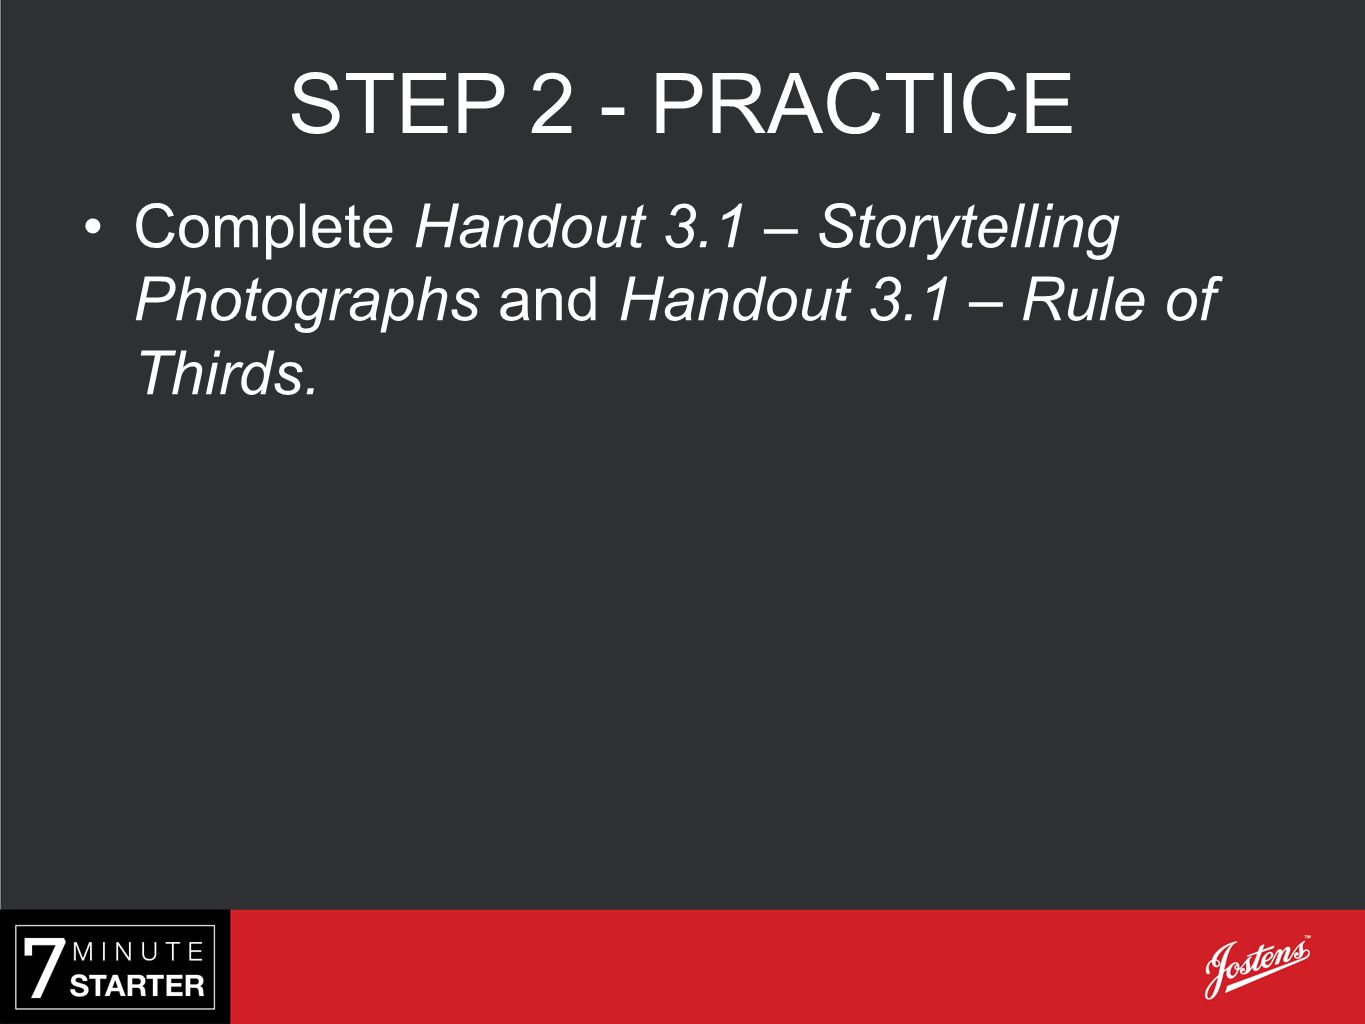 STEP 2 - PRACTICE Complete Handout 3.1 – Storytelling Photographs and Handout 3.1 – Rule of Thirds.